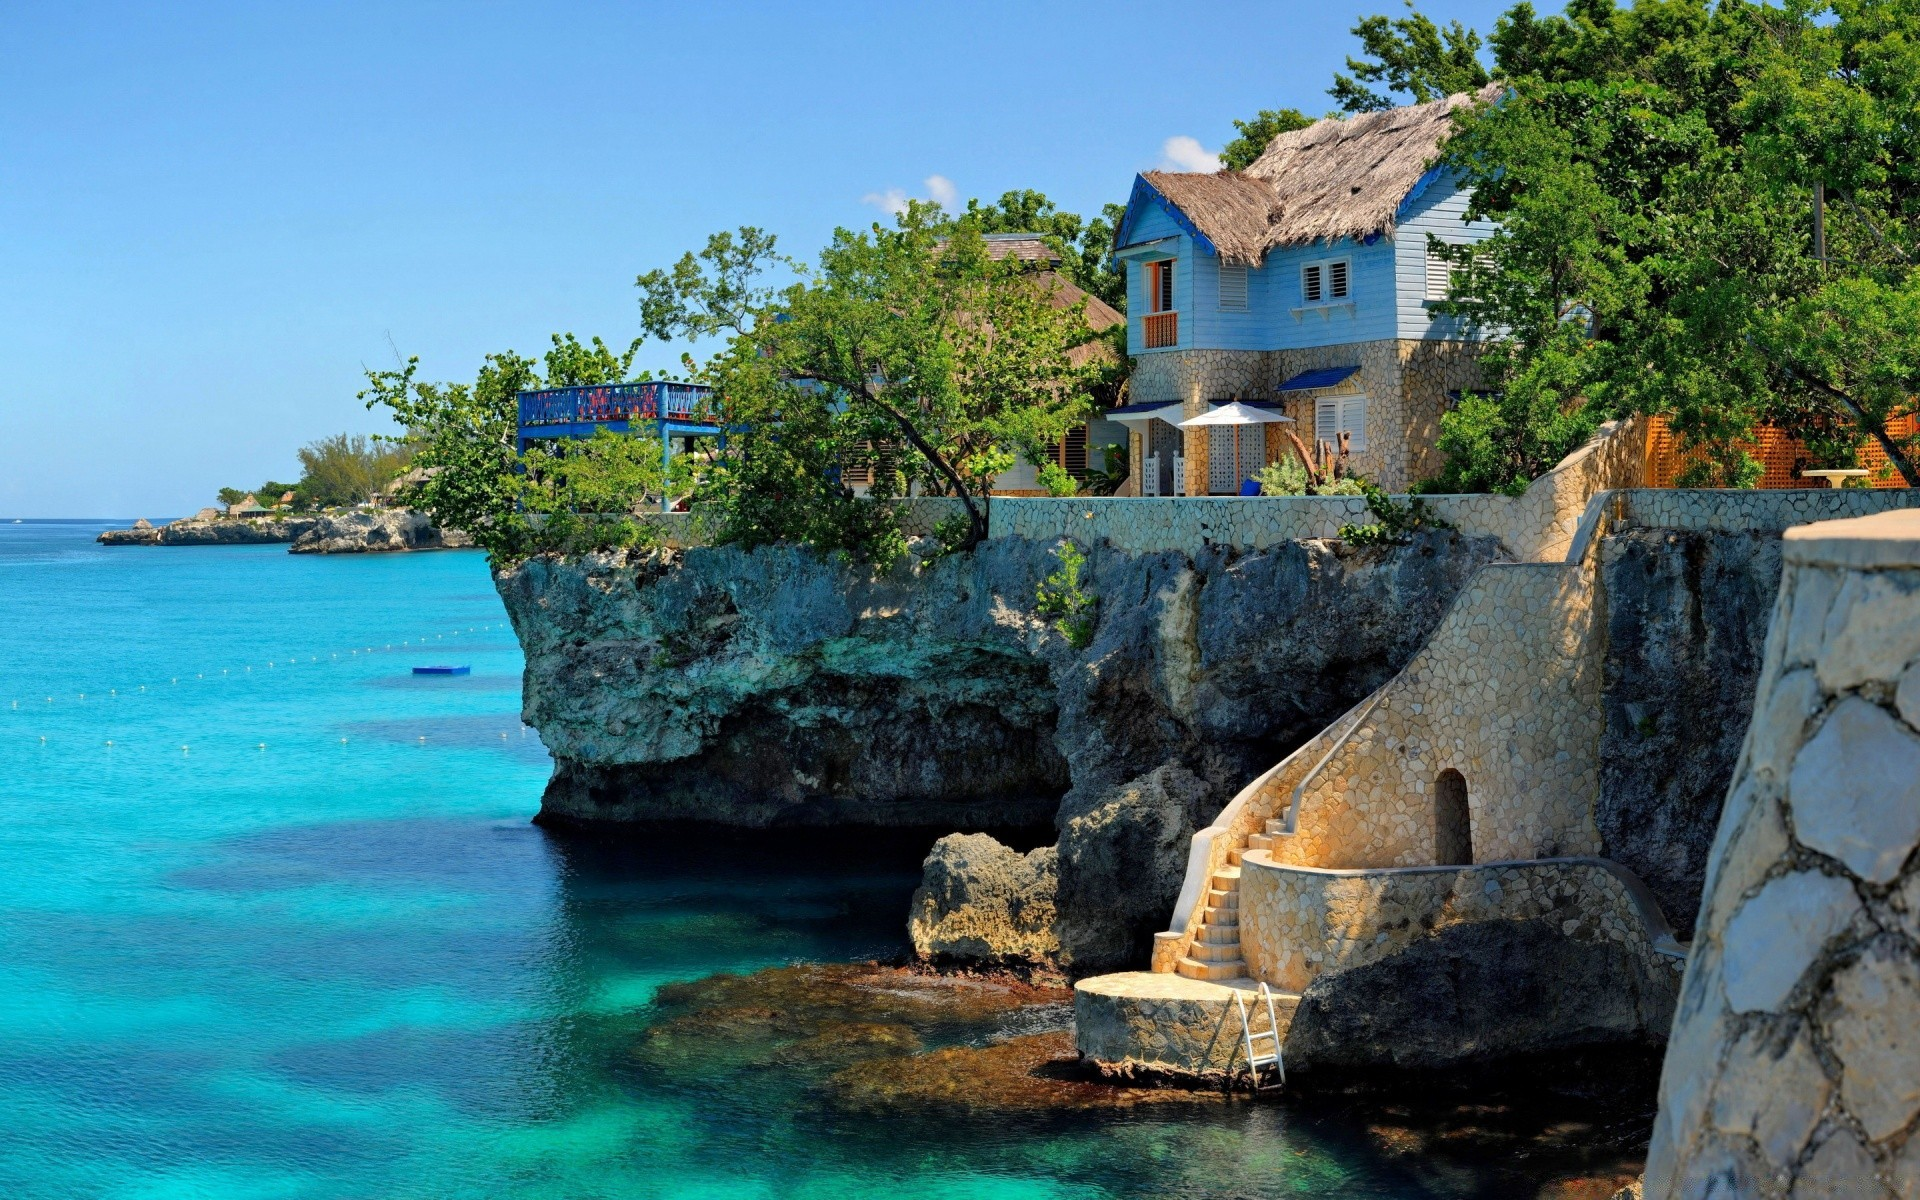 Houses Negril Jamaica Android Wallpapers For Free